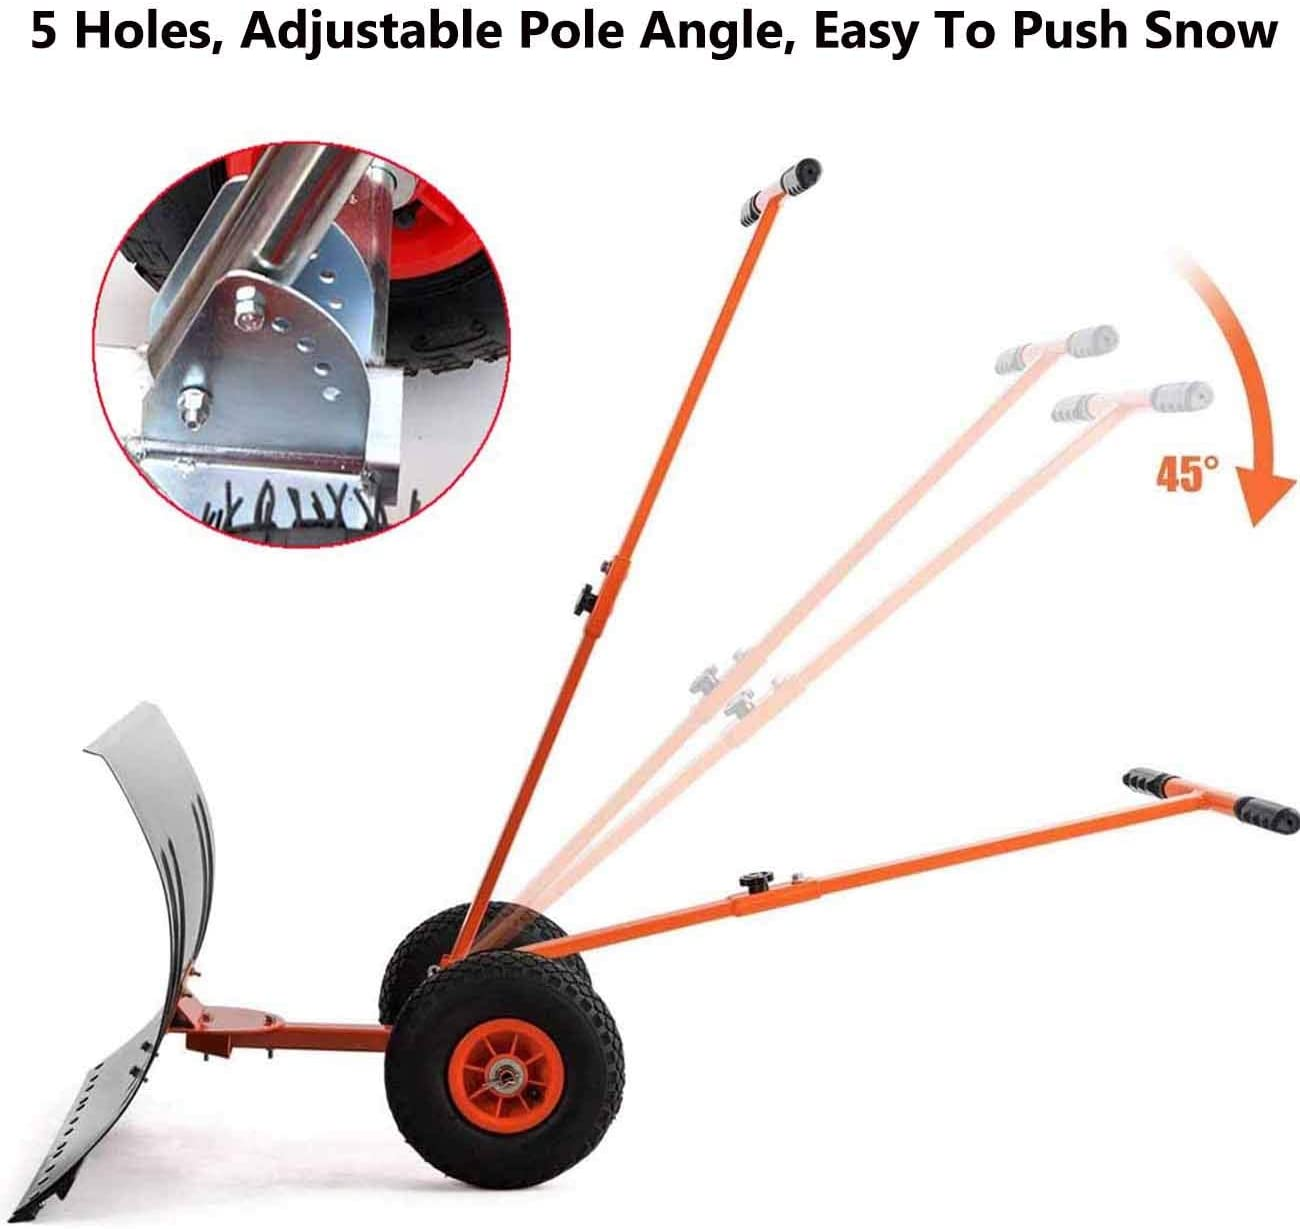 Wheeled Snow Shovel Pusher for Doorway Driveway Heavy Duty Rolling Snow Plow with 29 Large Blade /& Anti-Skid Wheels /& Adjustable Handle